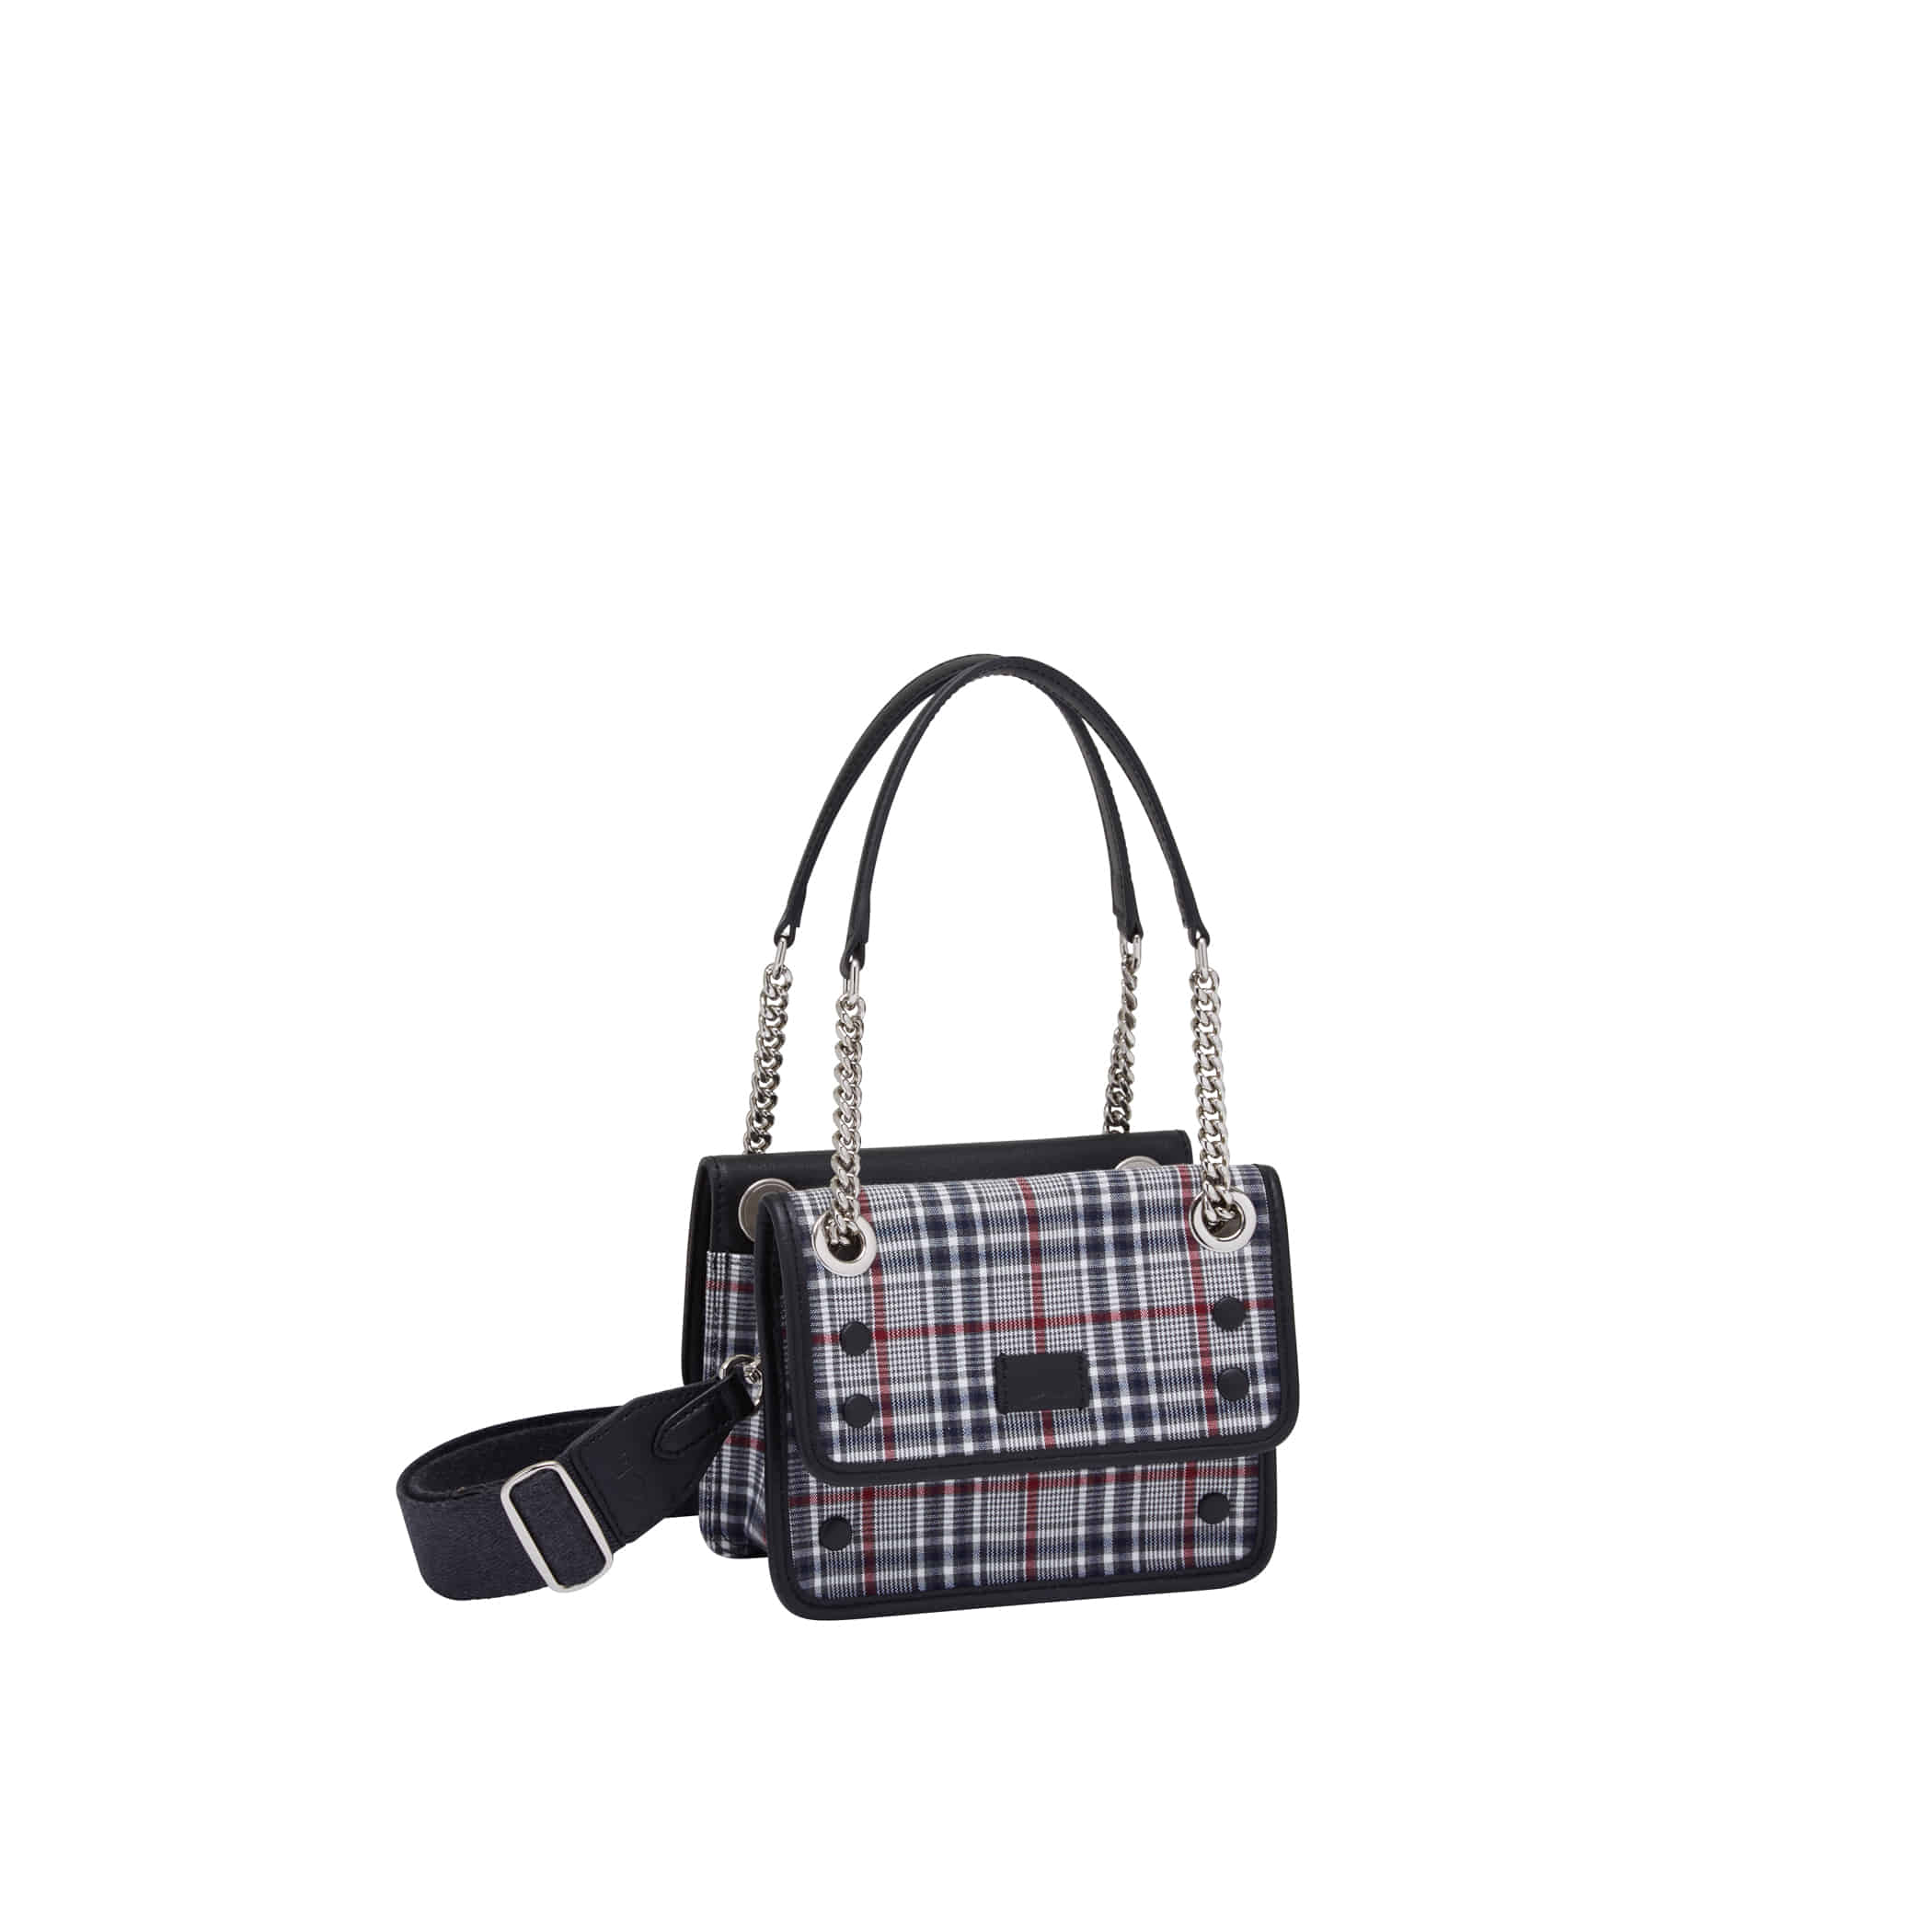 Clu_JAXSTA MINI CROSS BAG IN BLACK